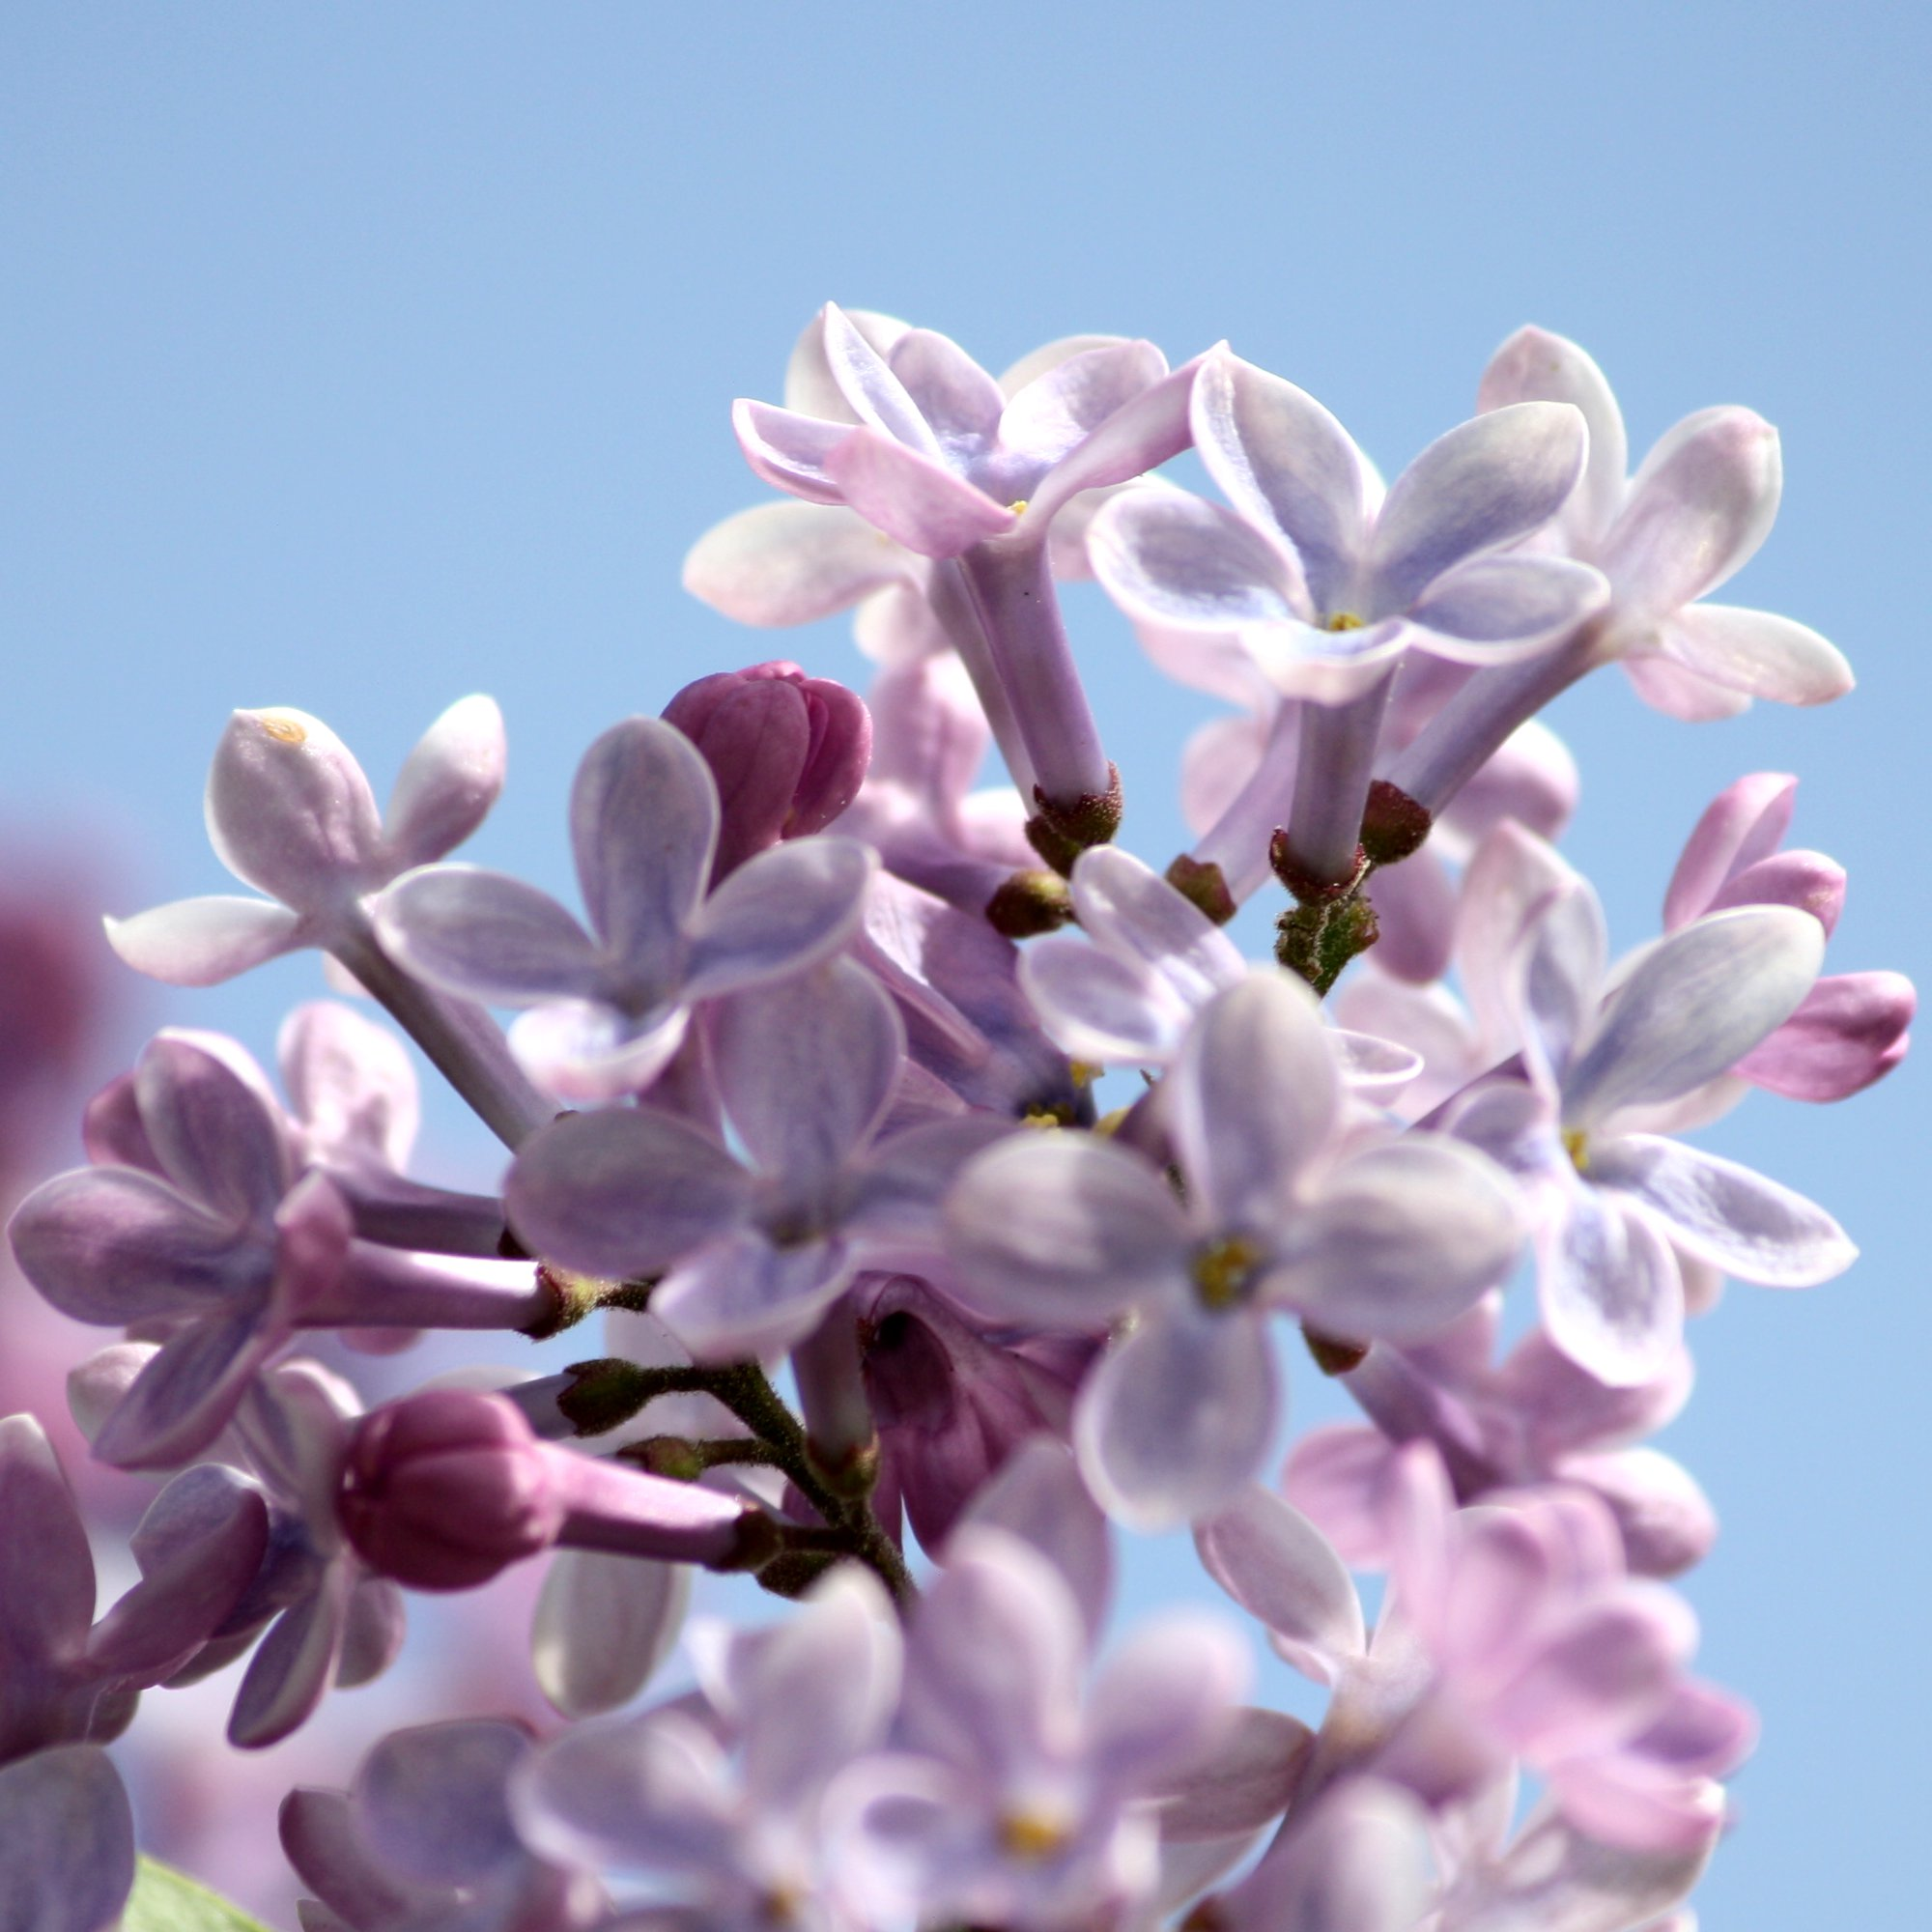 Lilac Close Up Picture Free Photograph Photos Public